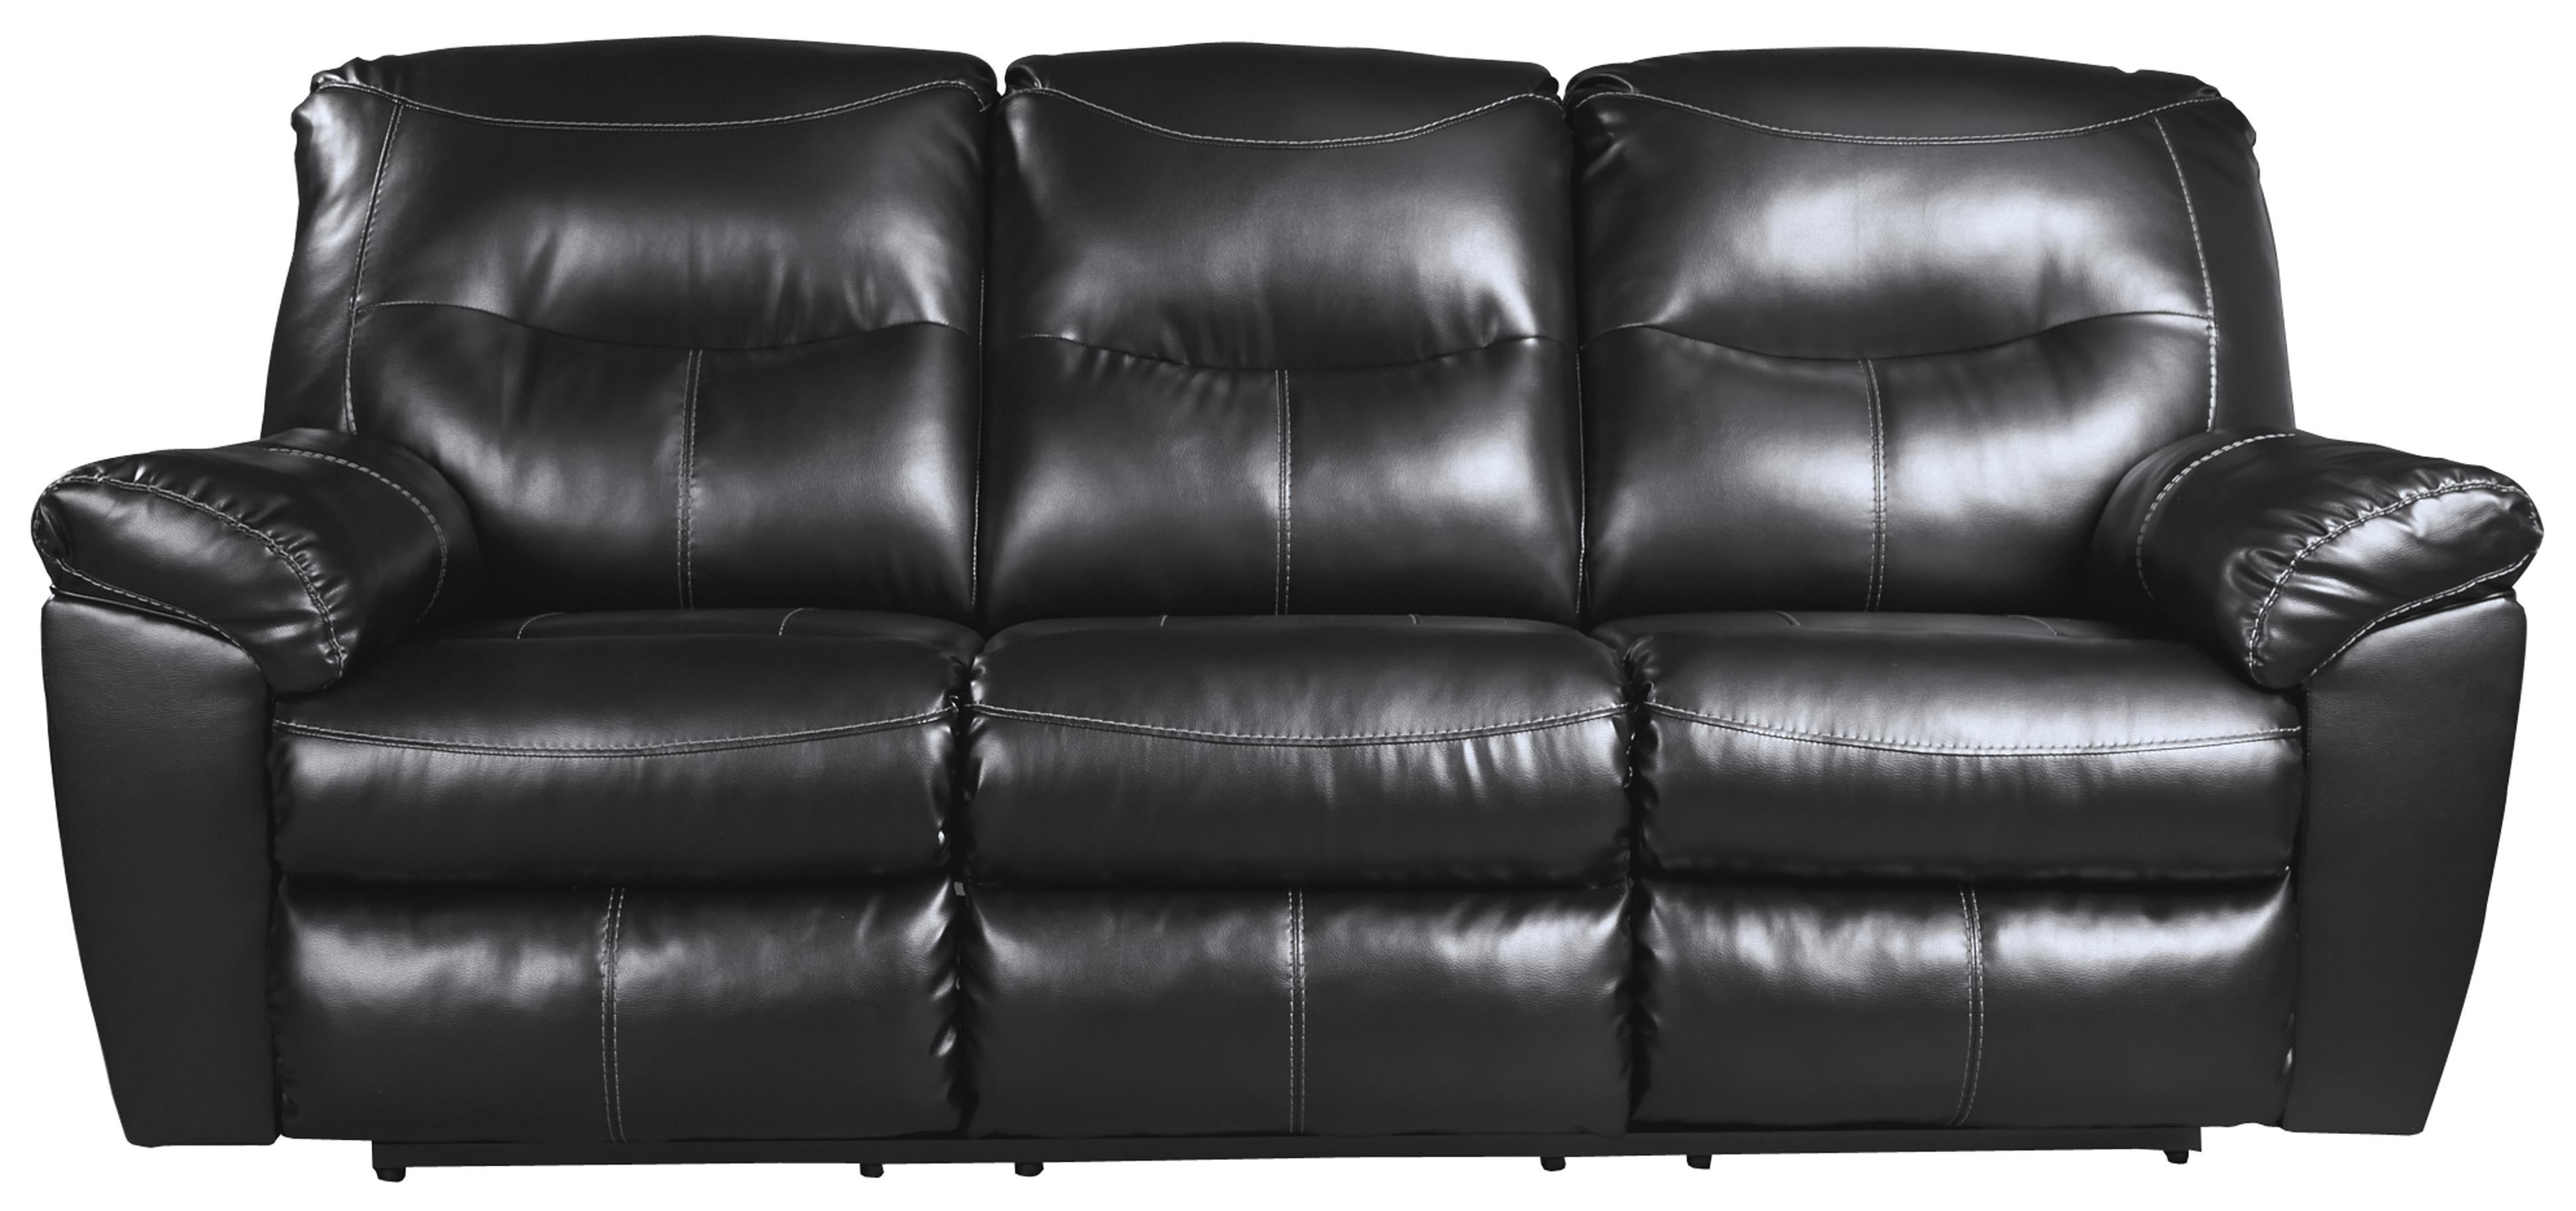 Signature Design by Ashley Kilzer DuraBlend® Reclining Sofa - Item Number: 8470188